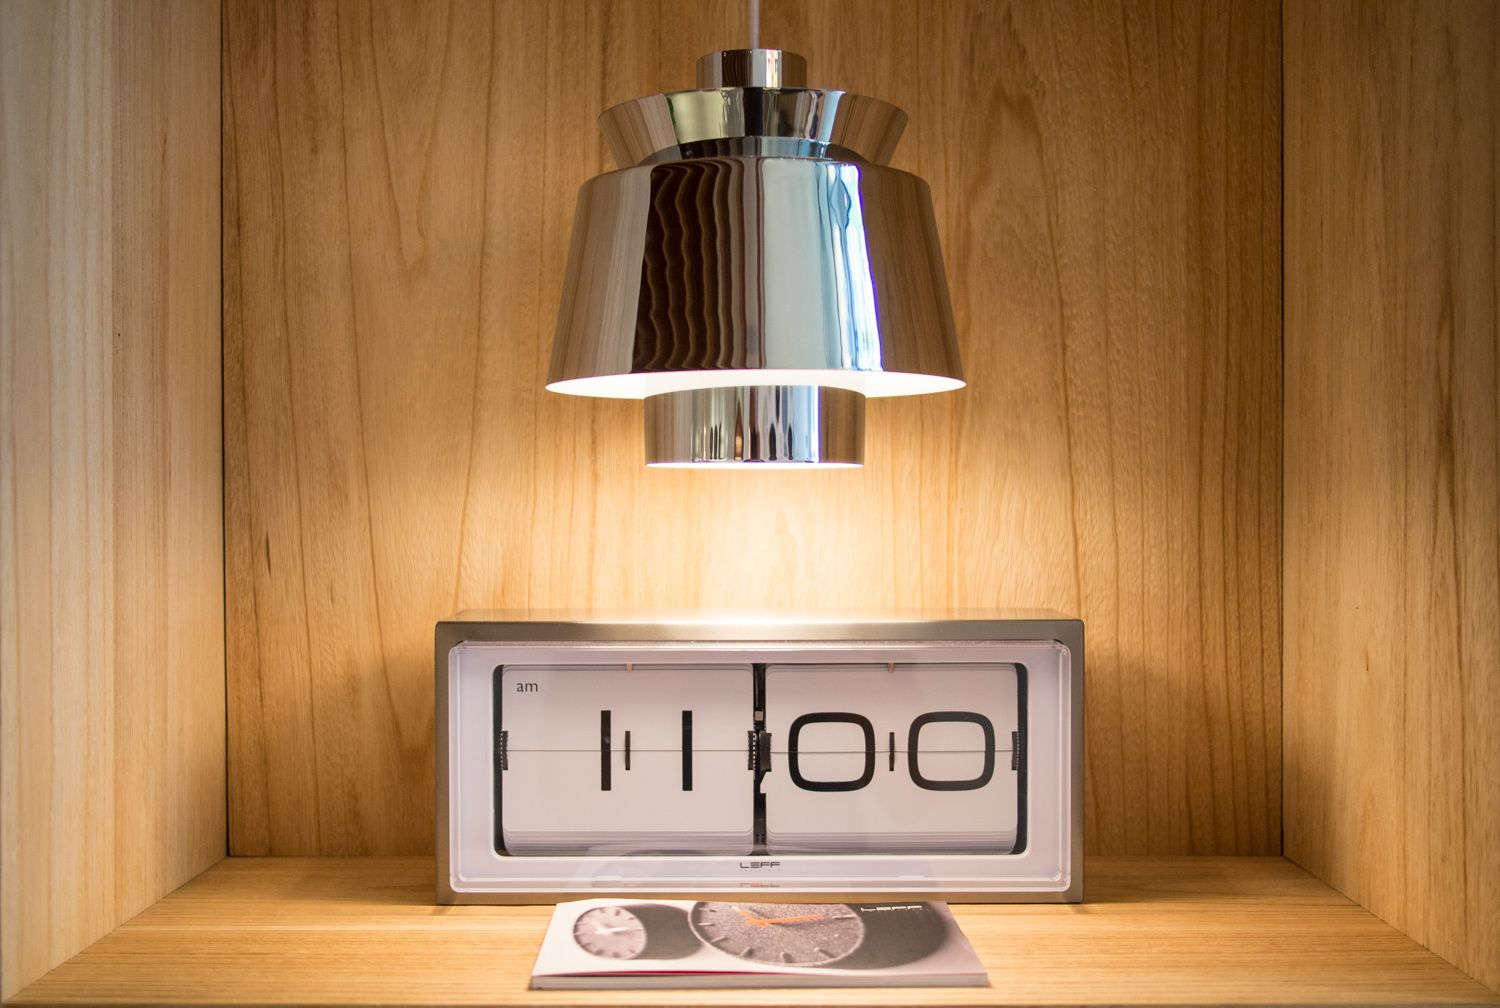 Exceptional Brick   Design Flip Clock Designed By Erwin Termaat For LEFF Amsterdam Design Inspirations